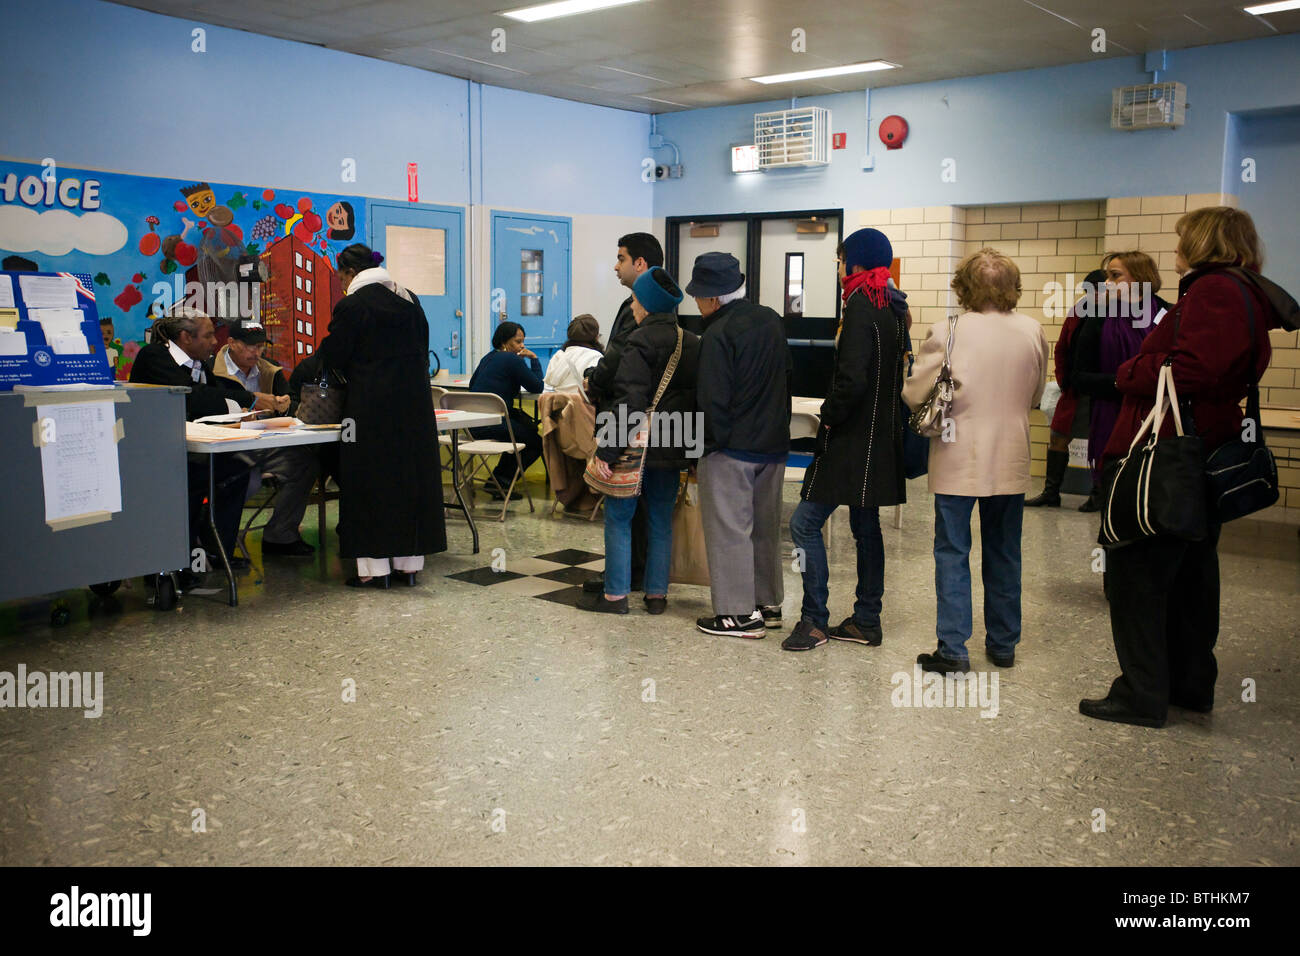 Voters on line to cast their ballots in New York in Washington Heights on election day Stock Photo